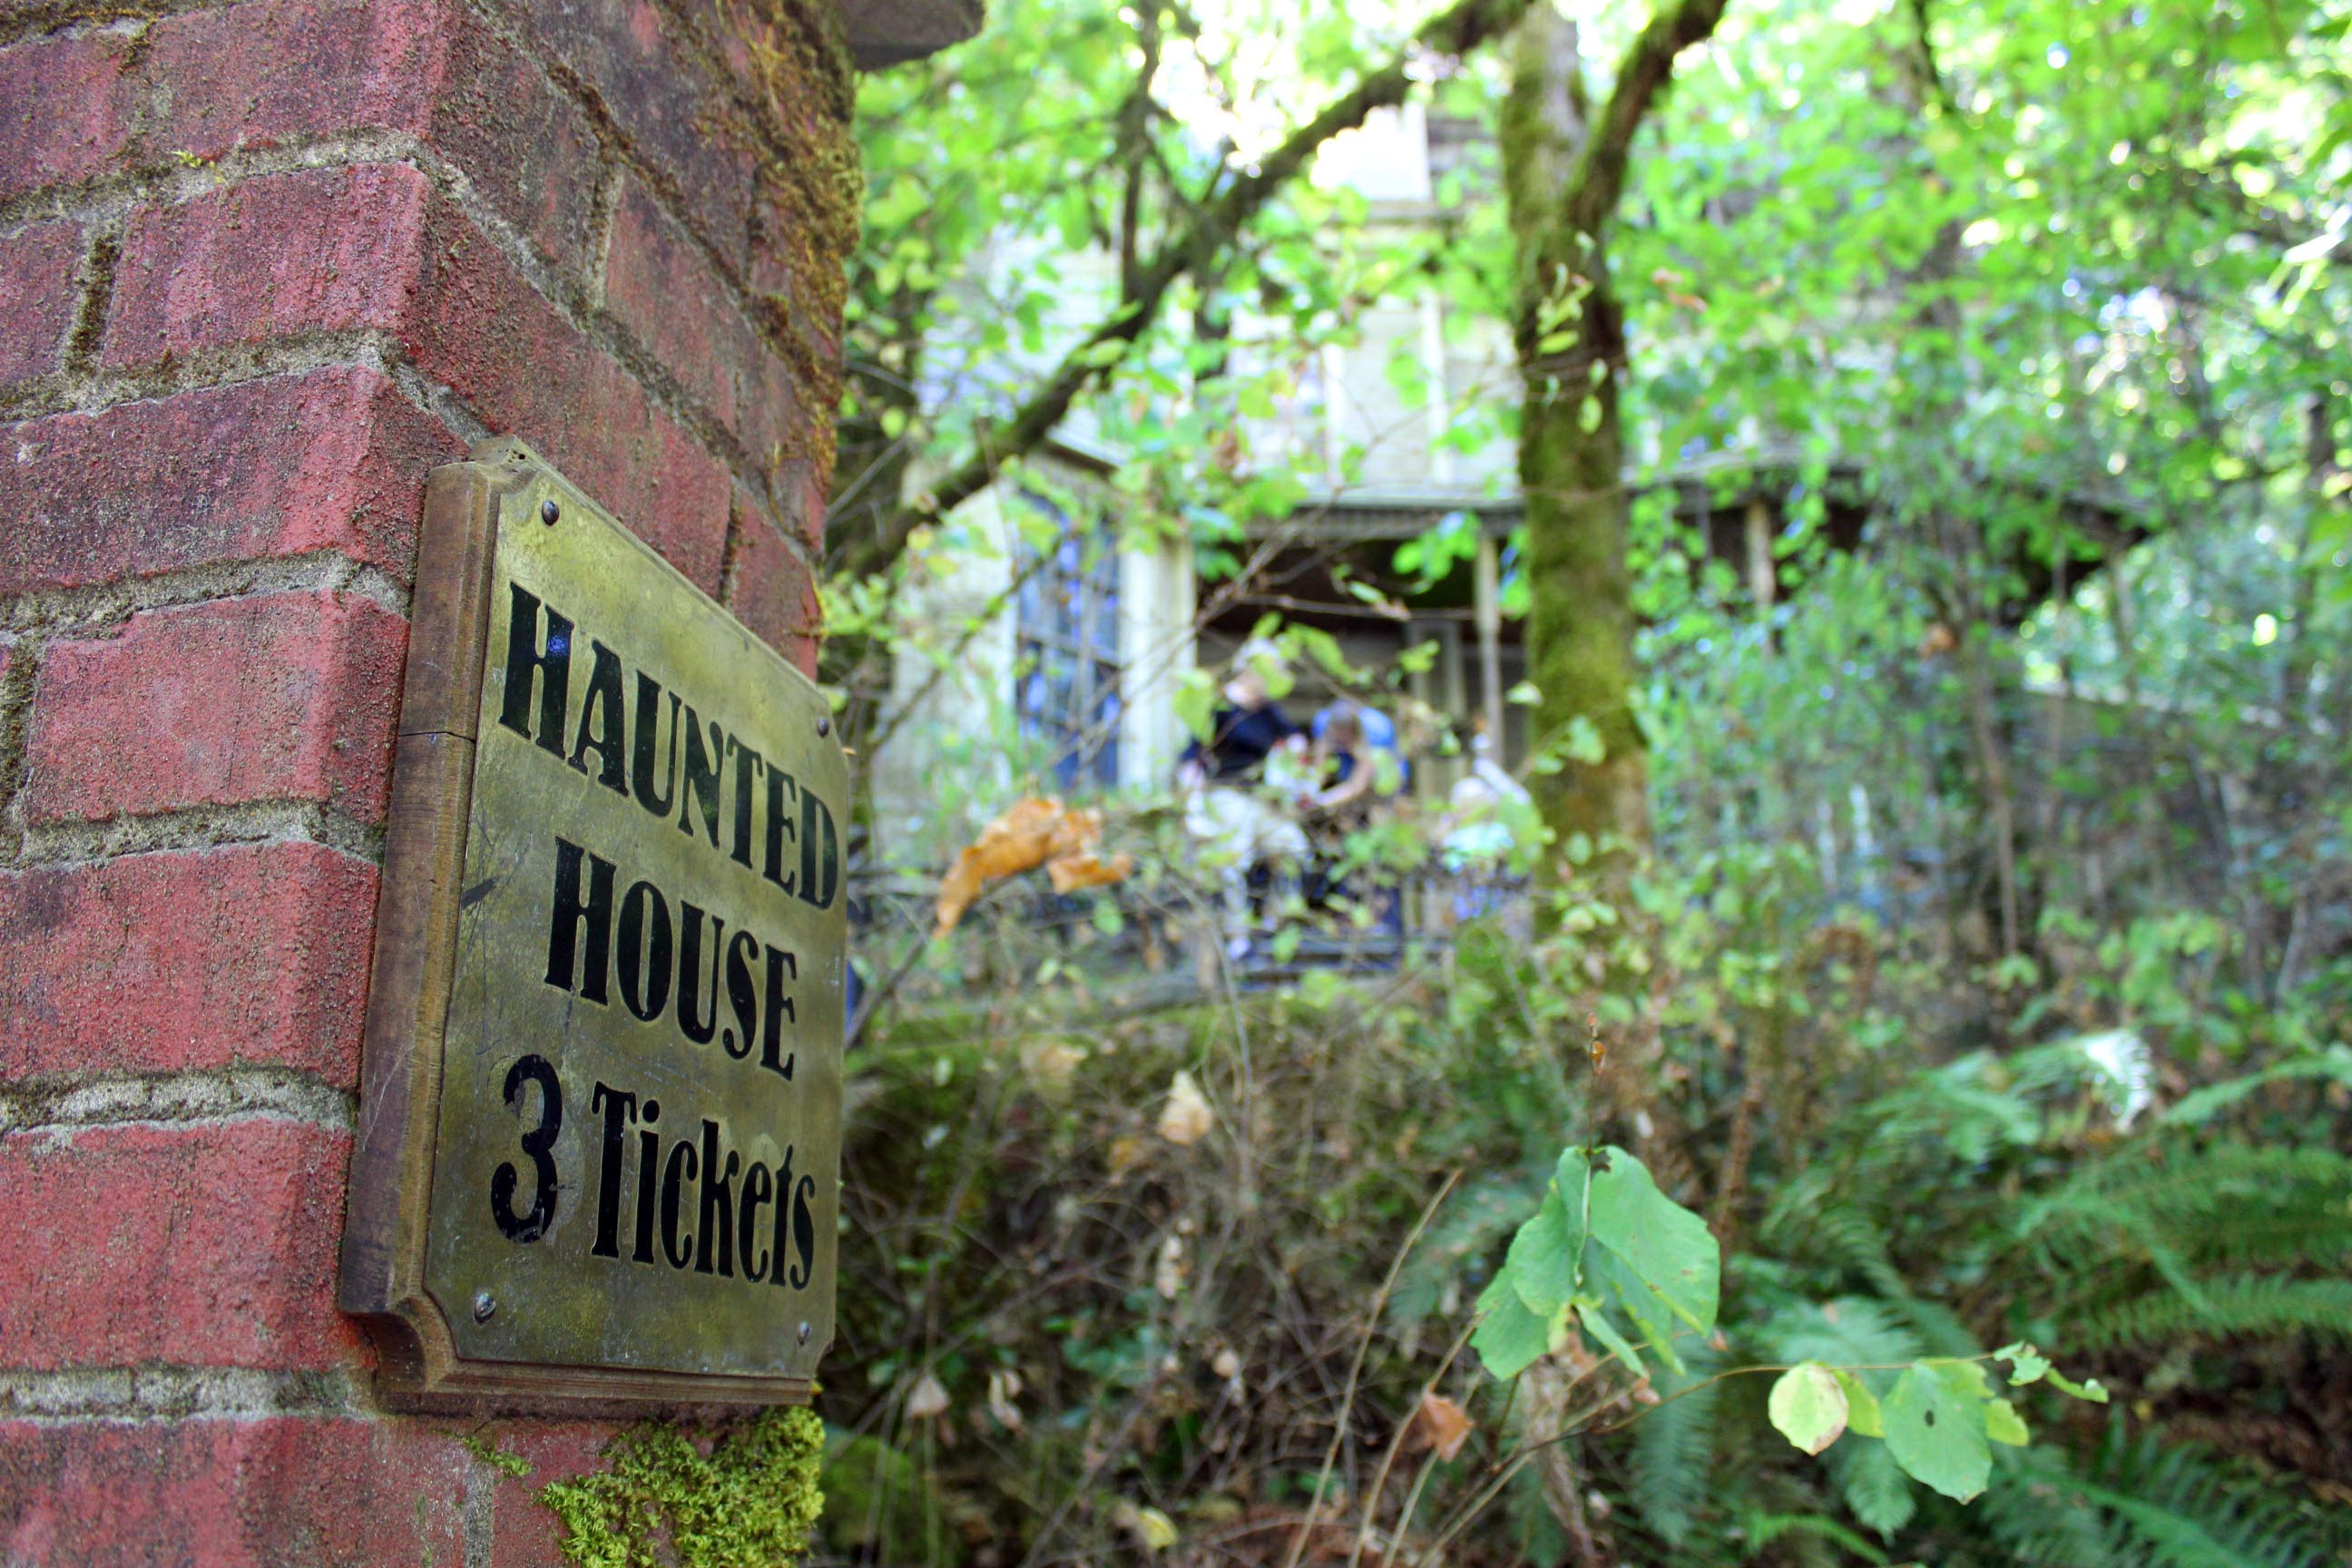 enchanted-forest-haunted-house